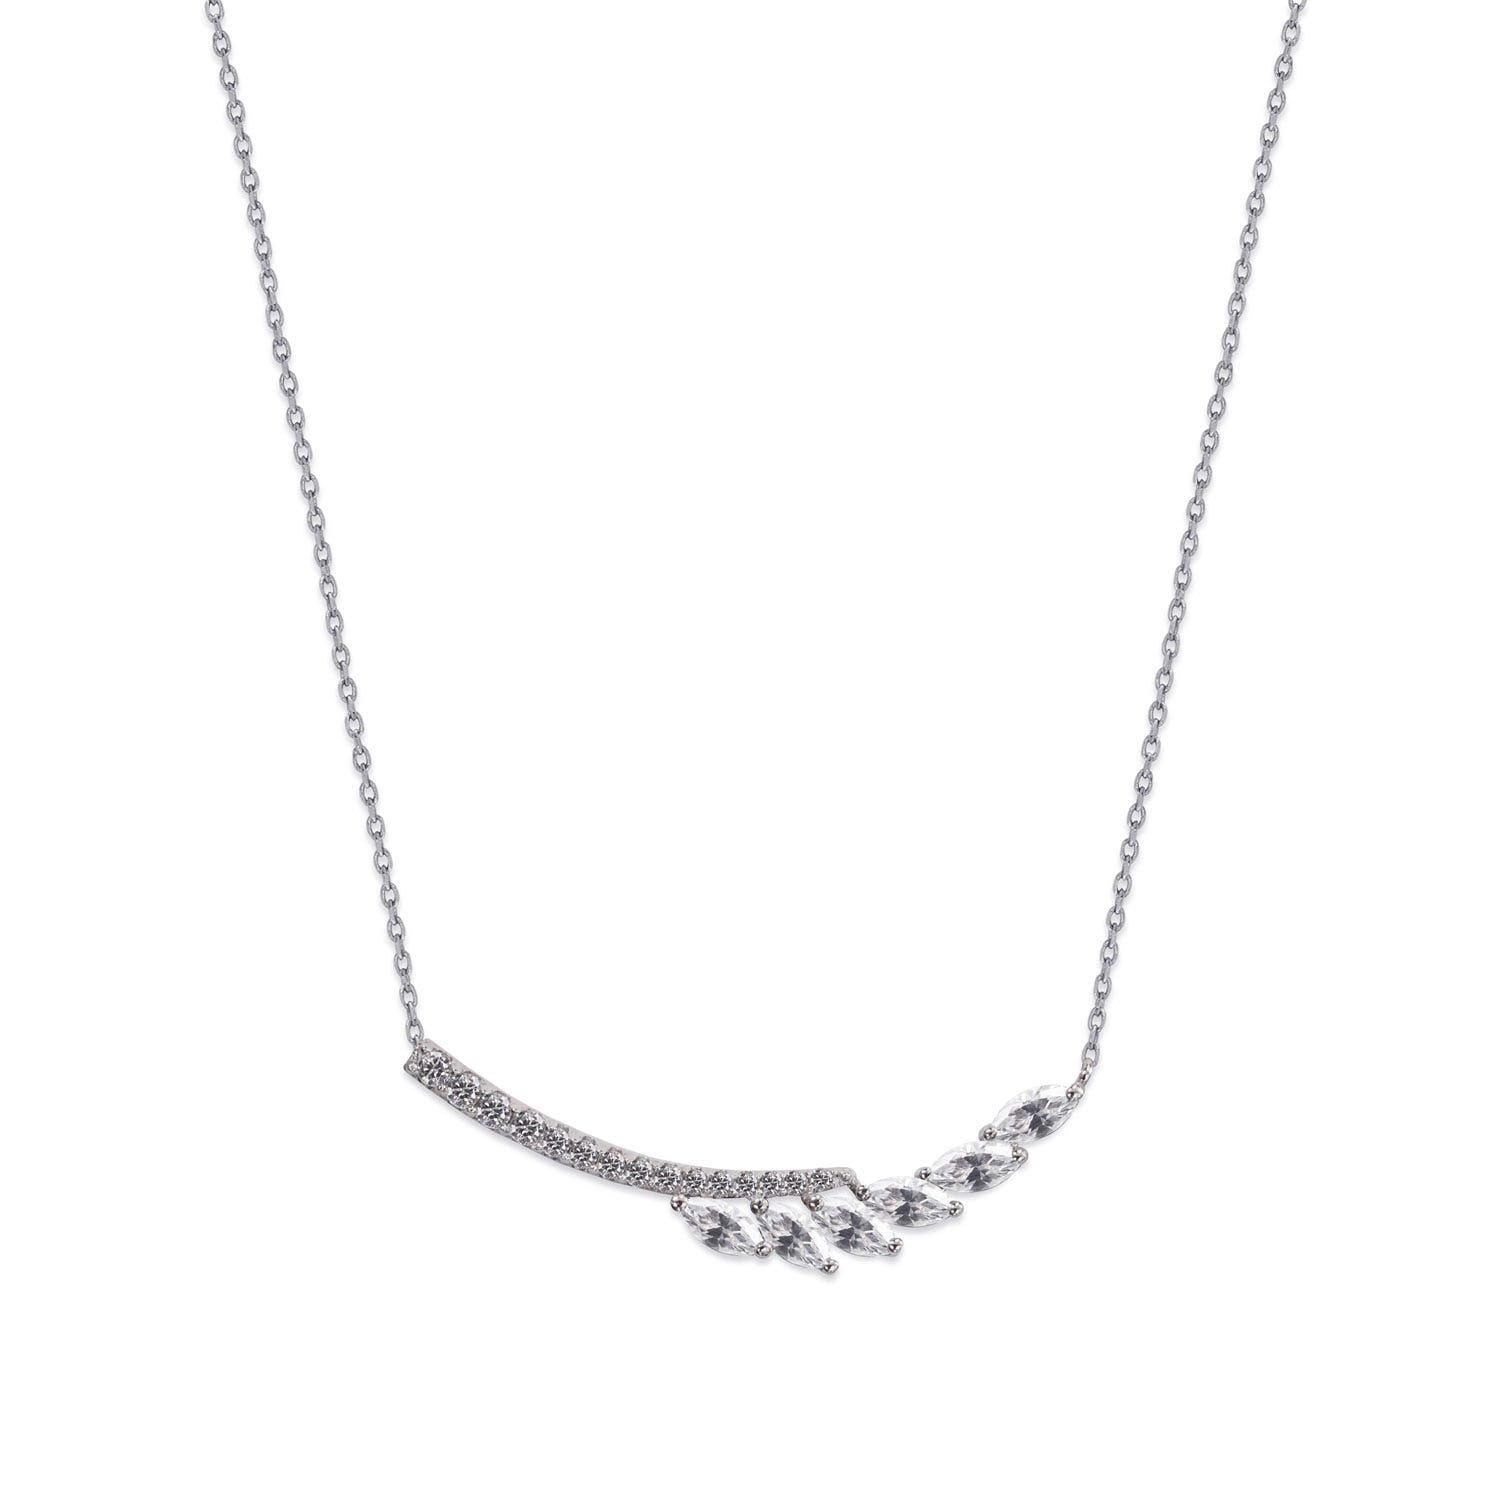 CARAT* London Cesar Collection Sterling Silver Laeta Necklace